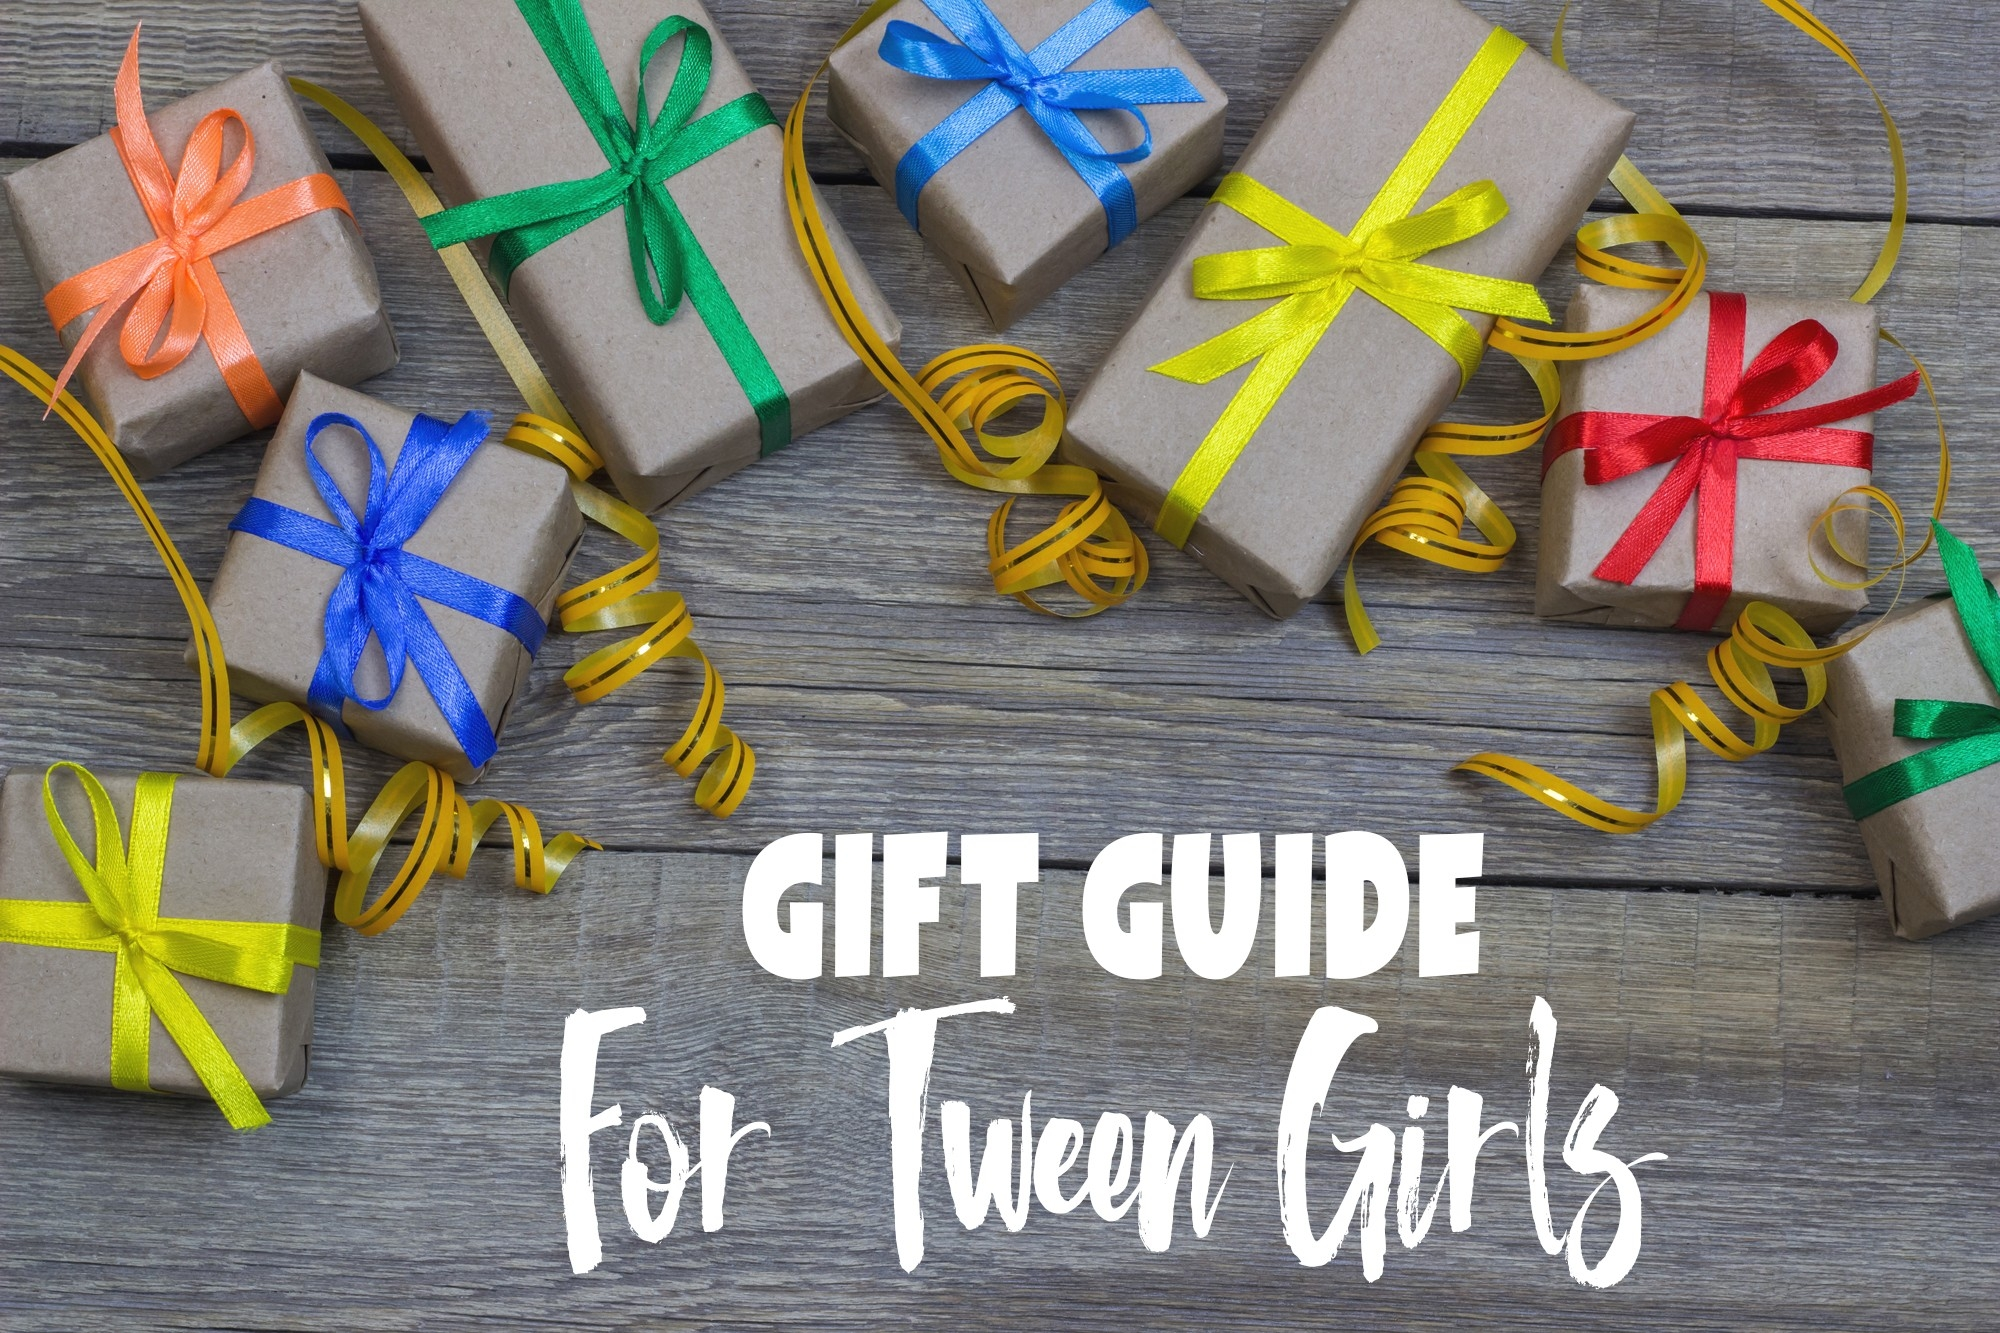 Gift Ideas For Tween Girls They Will Love: 2018 Gift Guide | Raising  Girls Advent Calendar With Gifts